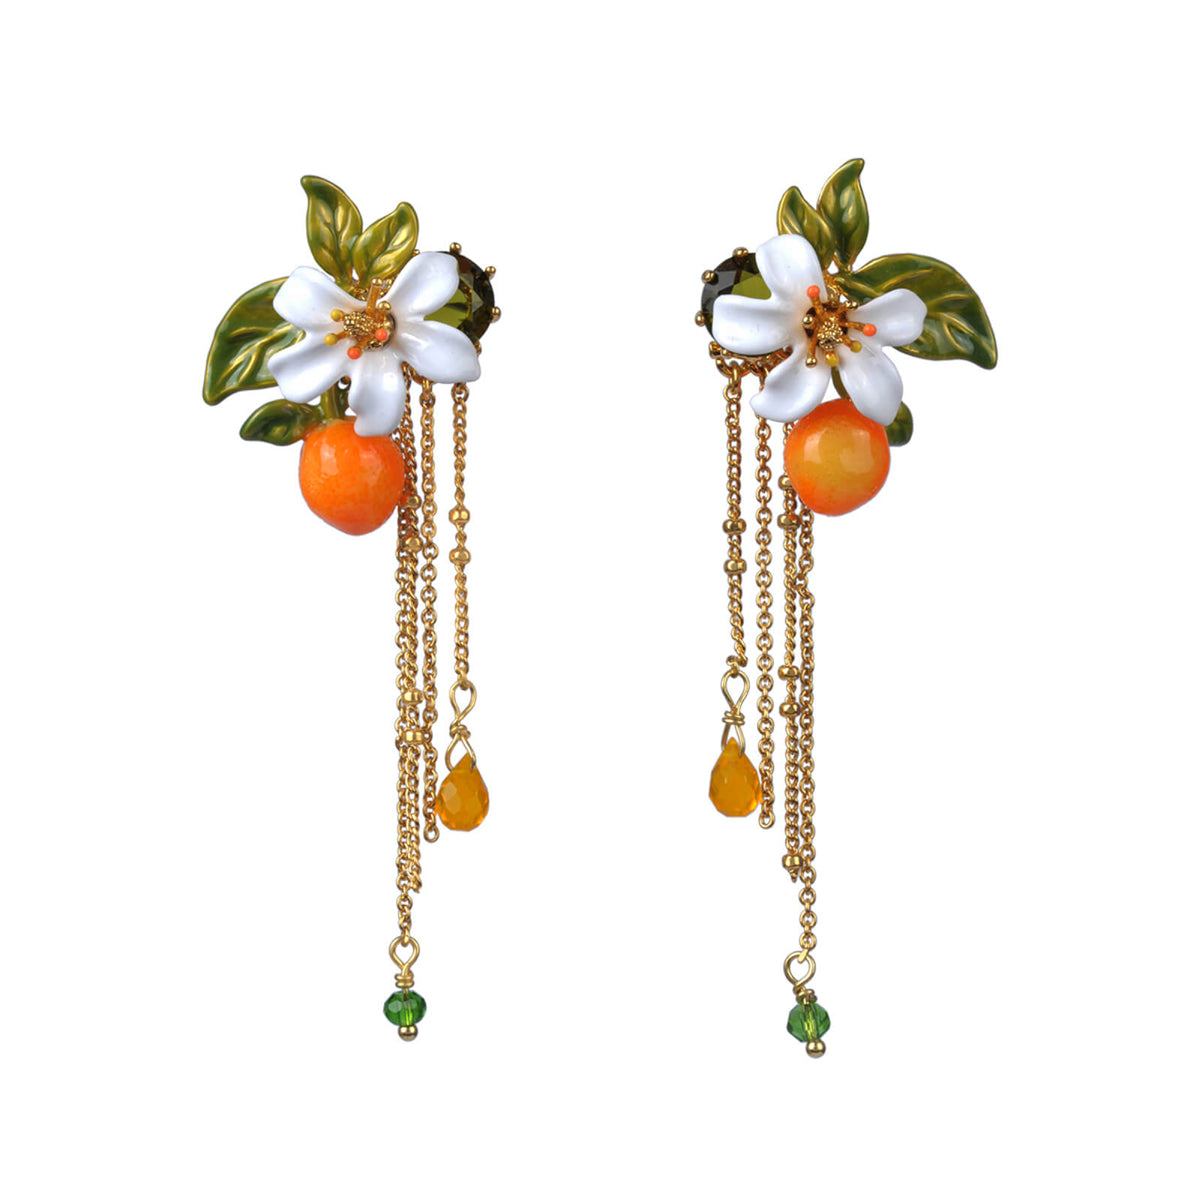 Earring Accessoires Ready to Wed